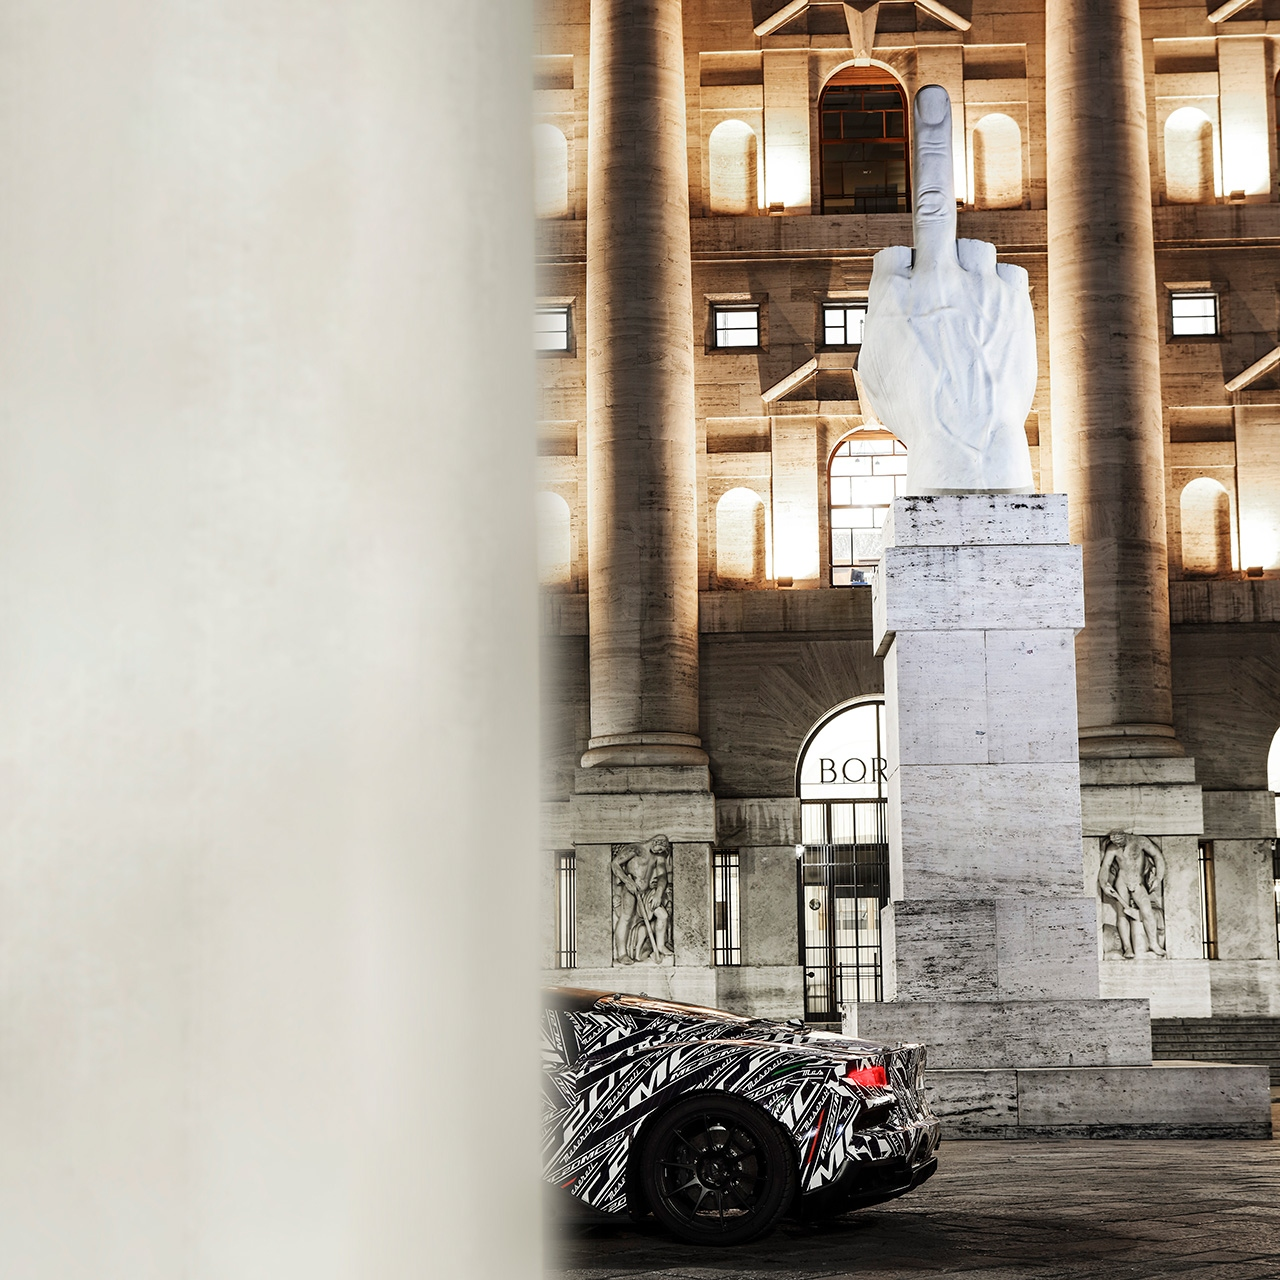 New Maserati MC20 (2020) super sports car prototype testing in Milan, next to Cattelan's L.O.V.E sculpture.